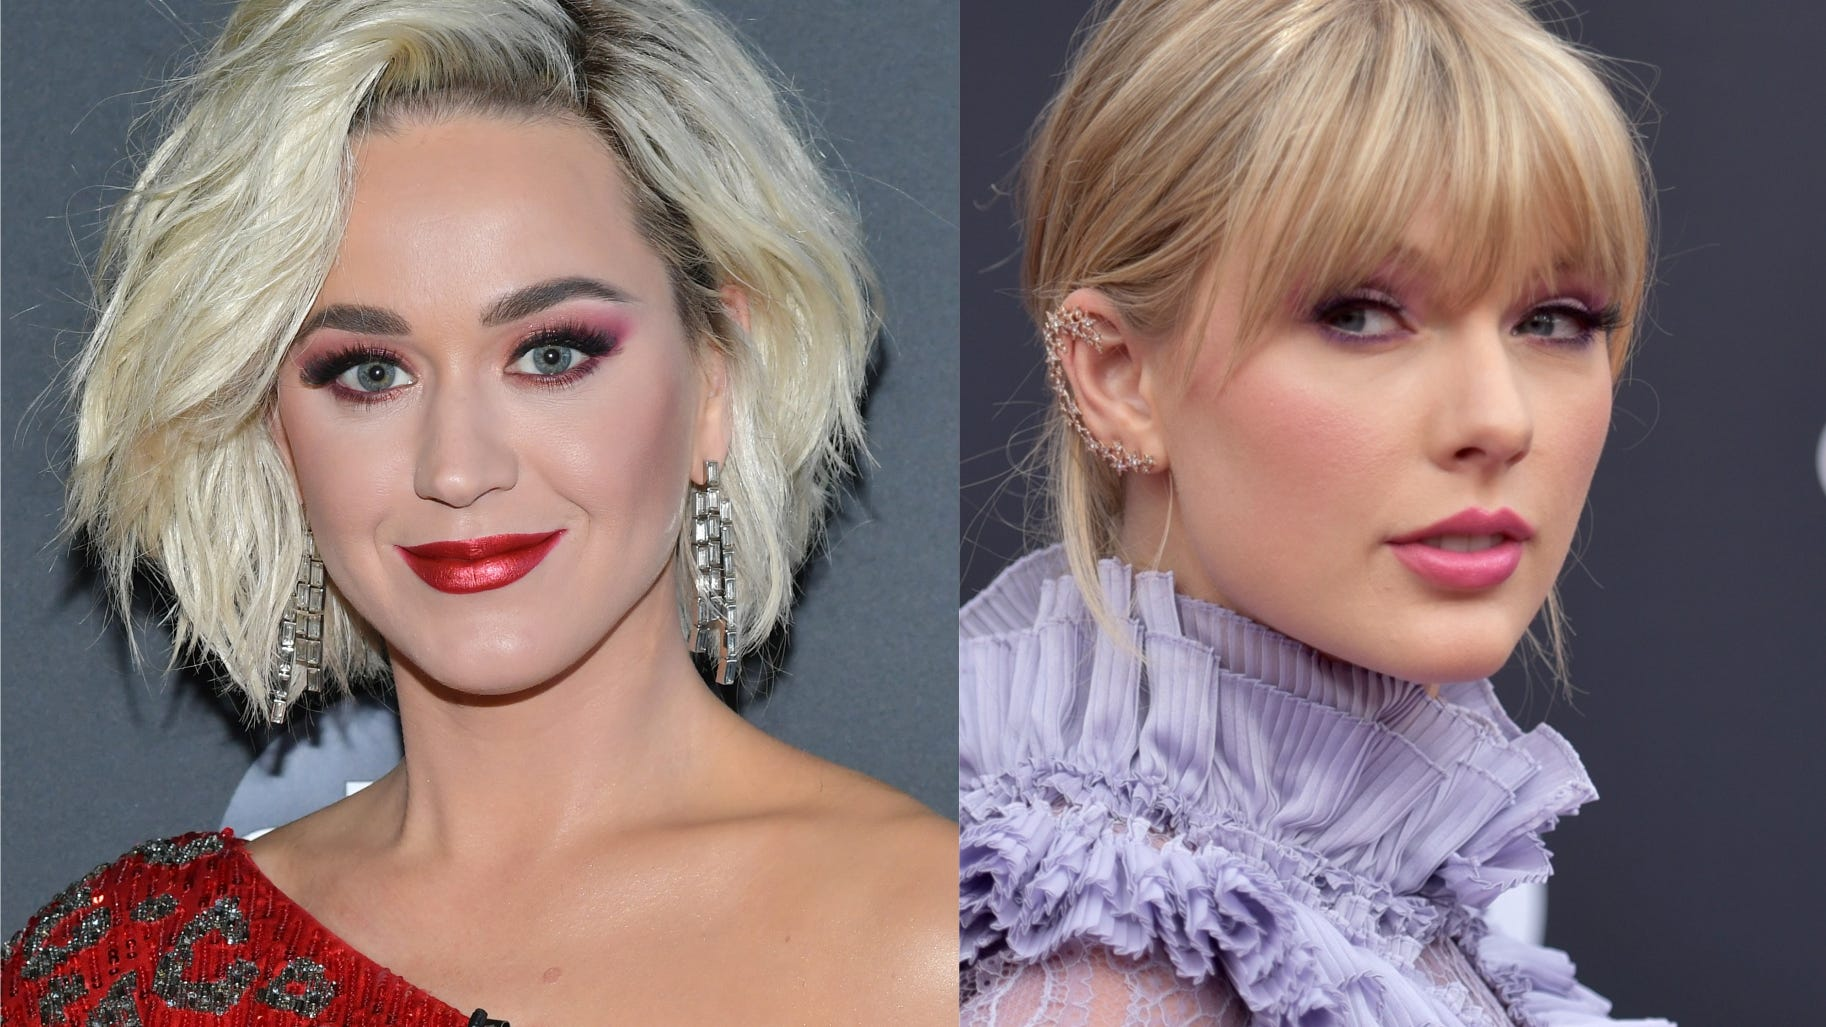 Taylor Swift Katy Perry Ended Their Bad Blood Now Have Trust